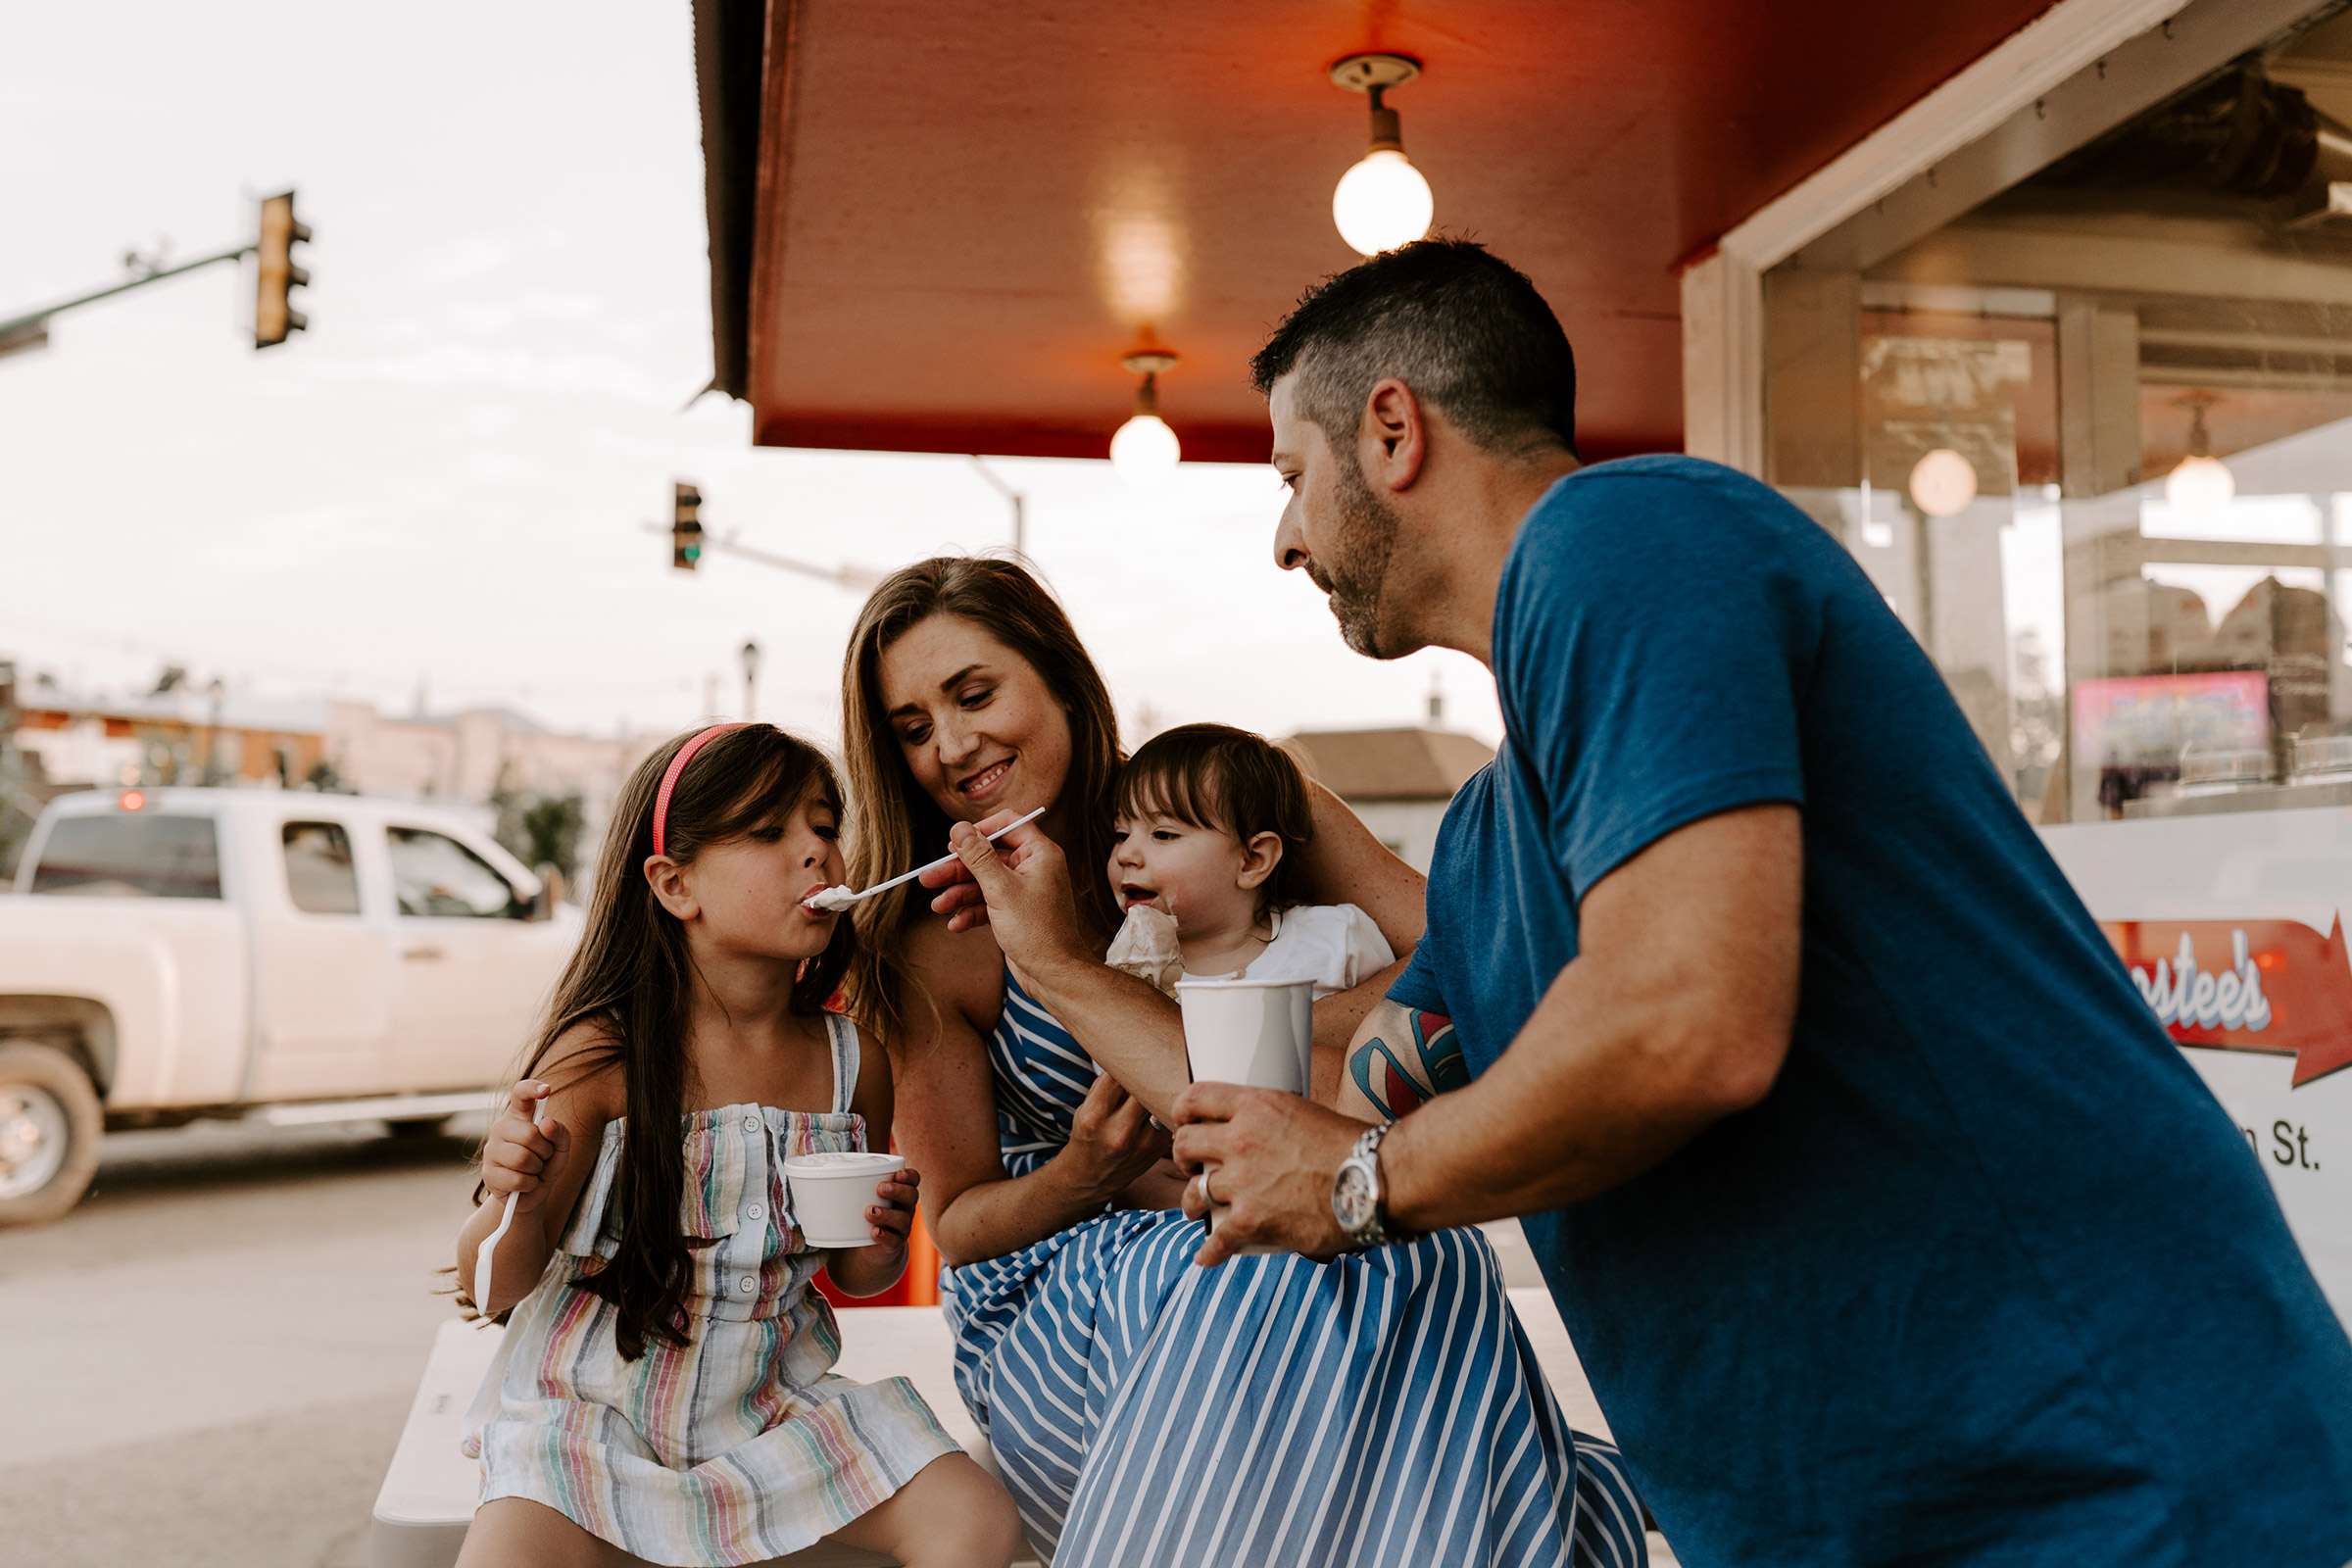 natale-family-dad-feeding-daughter-ice-cream-at-frostees-winterset-iowa-raelyn-ramey-photography-195.jpg